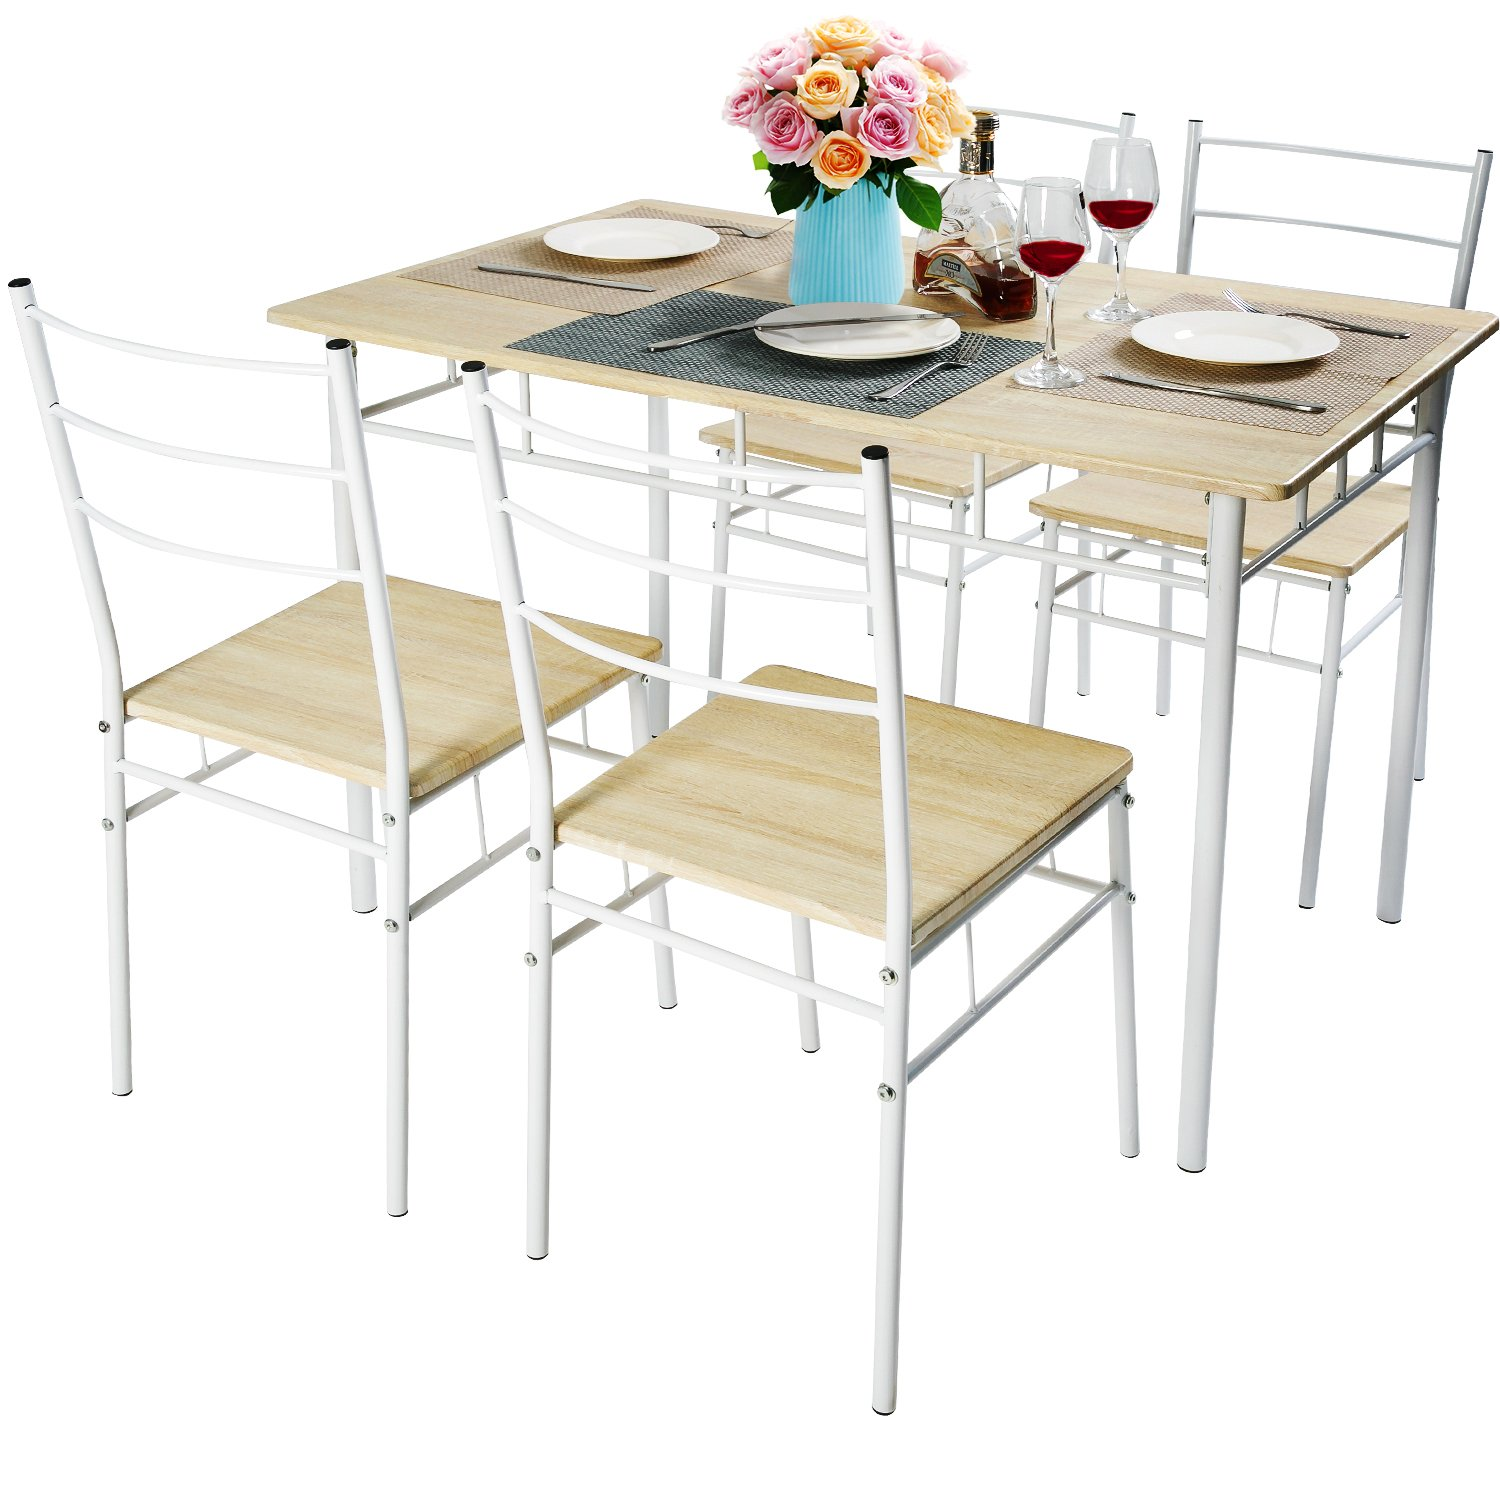 Harper&Bright Designs 5 Pcs Wood and Metal Dining Set Table and 4 Chairs Home Kitchen Modern Furniture (Oak)